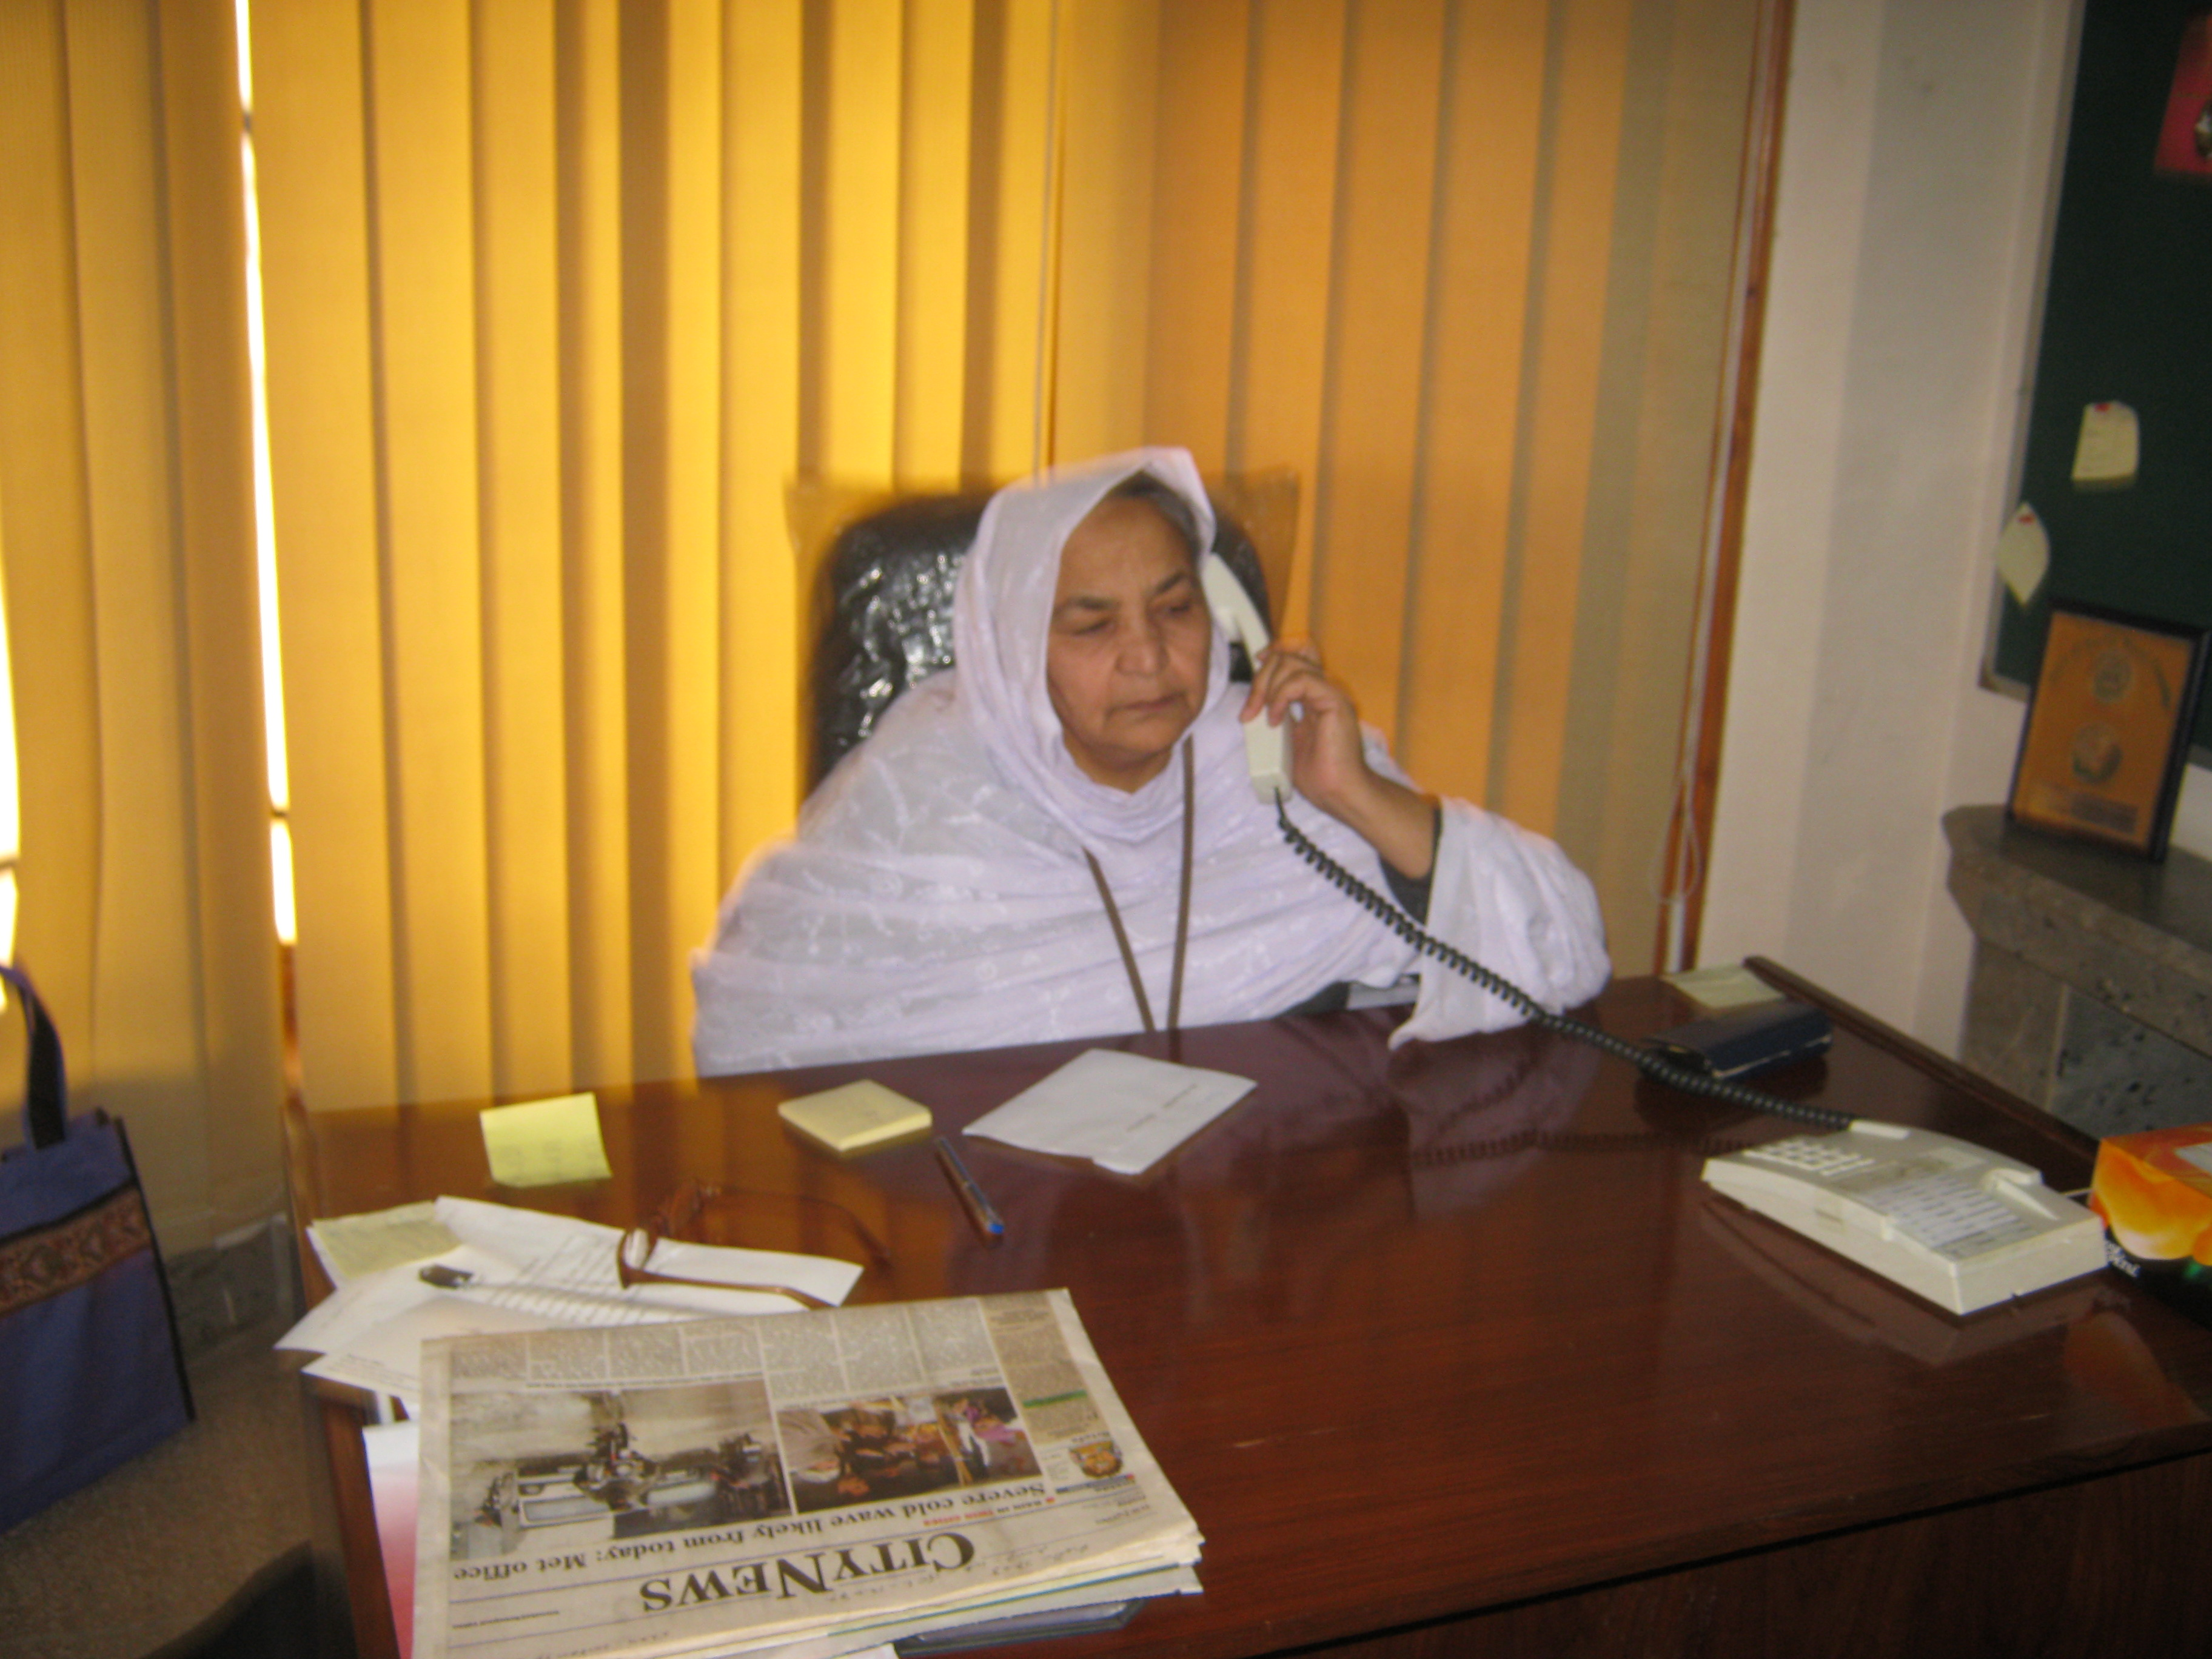 Maryam Bibi at her desk